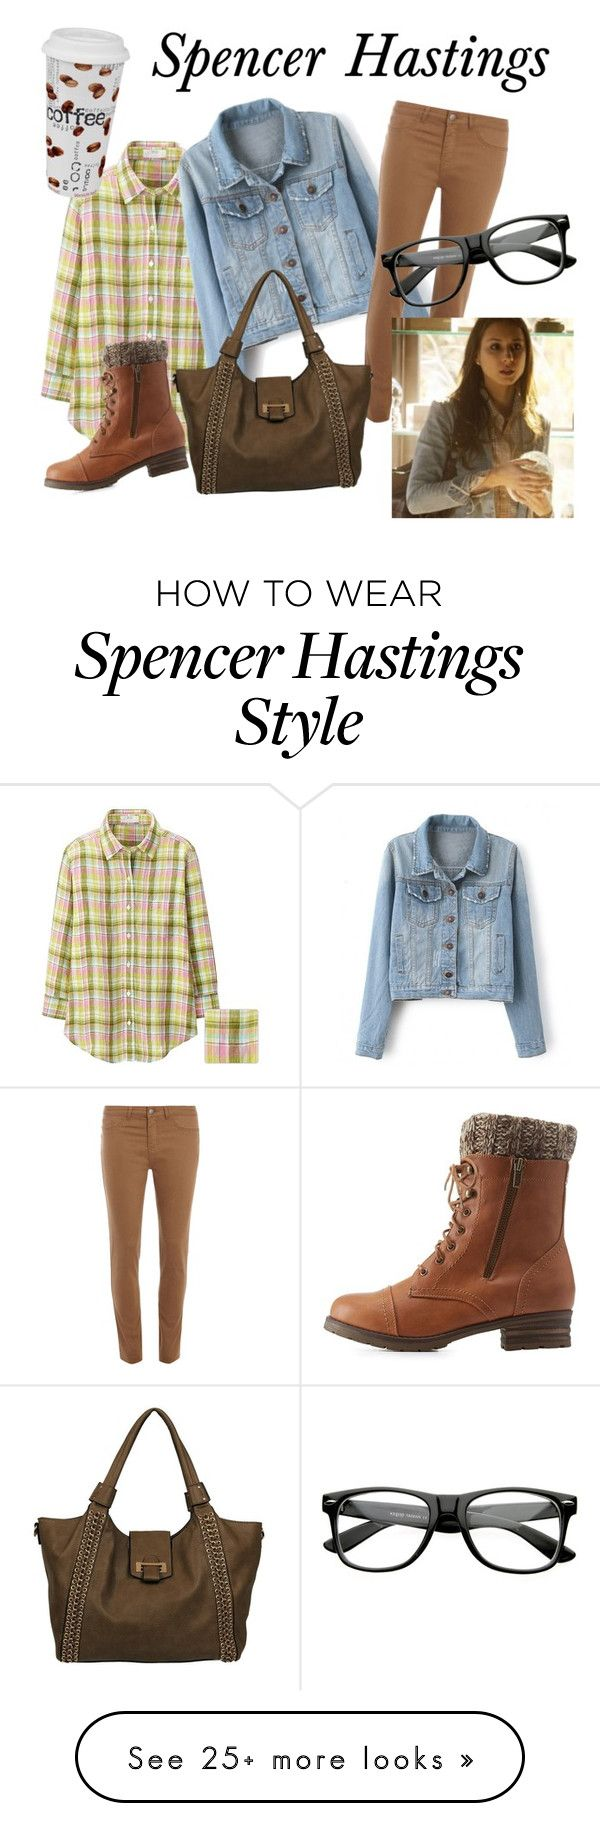 """Spencer Hastings #1"" by clare67 on Polyvore featuring Uniqlo, Dorothy Perkins, Black Rivet, Charlotte Russe, Könitz, GetTheLook, PrettyLittleLiars and spencerhastings"